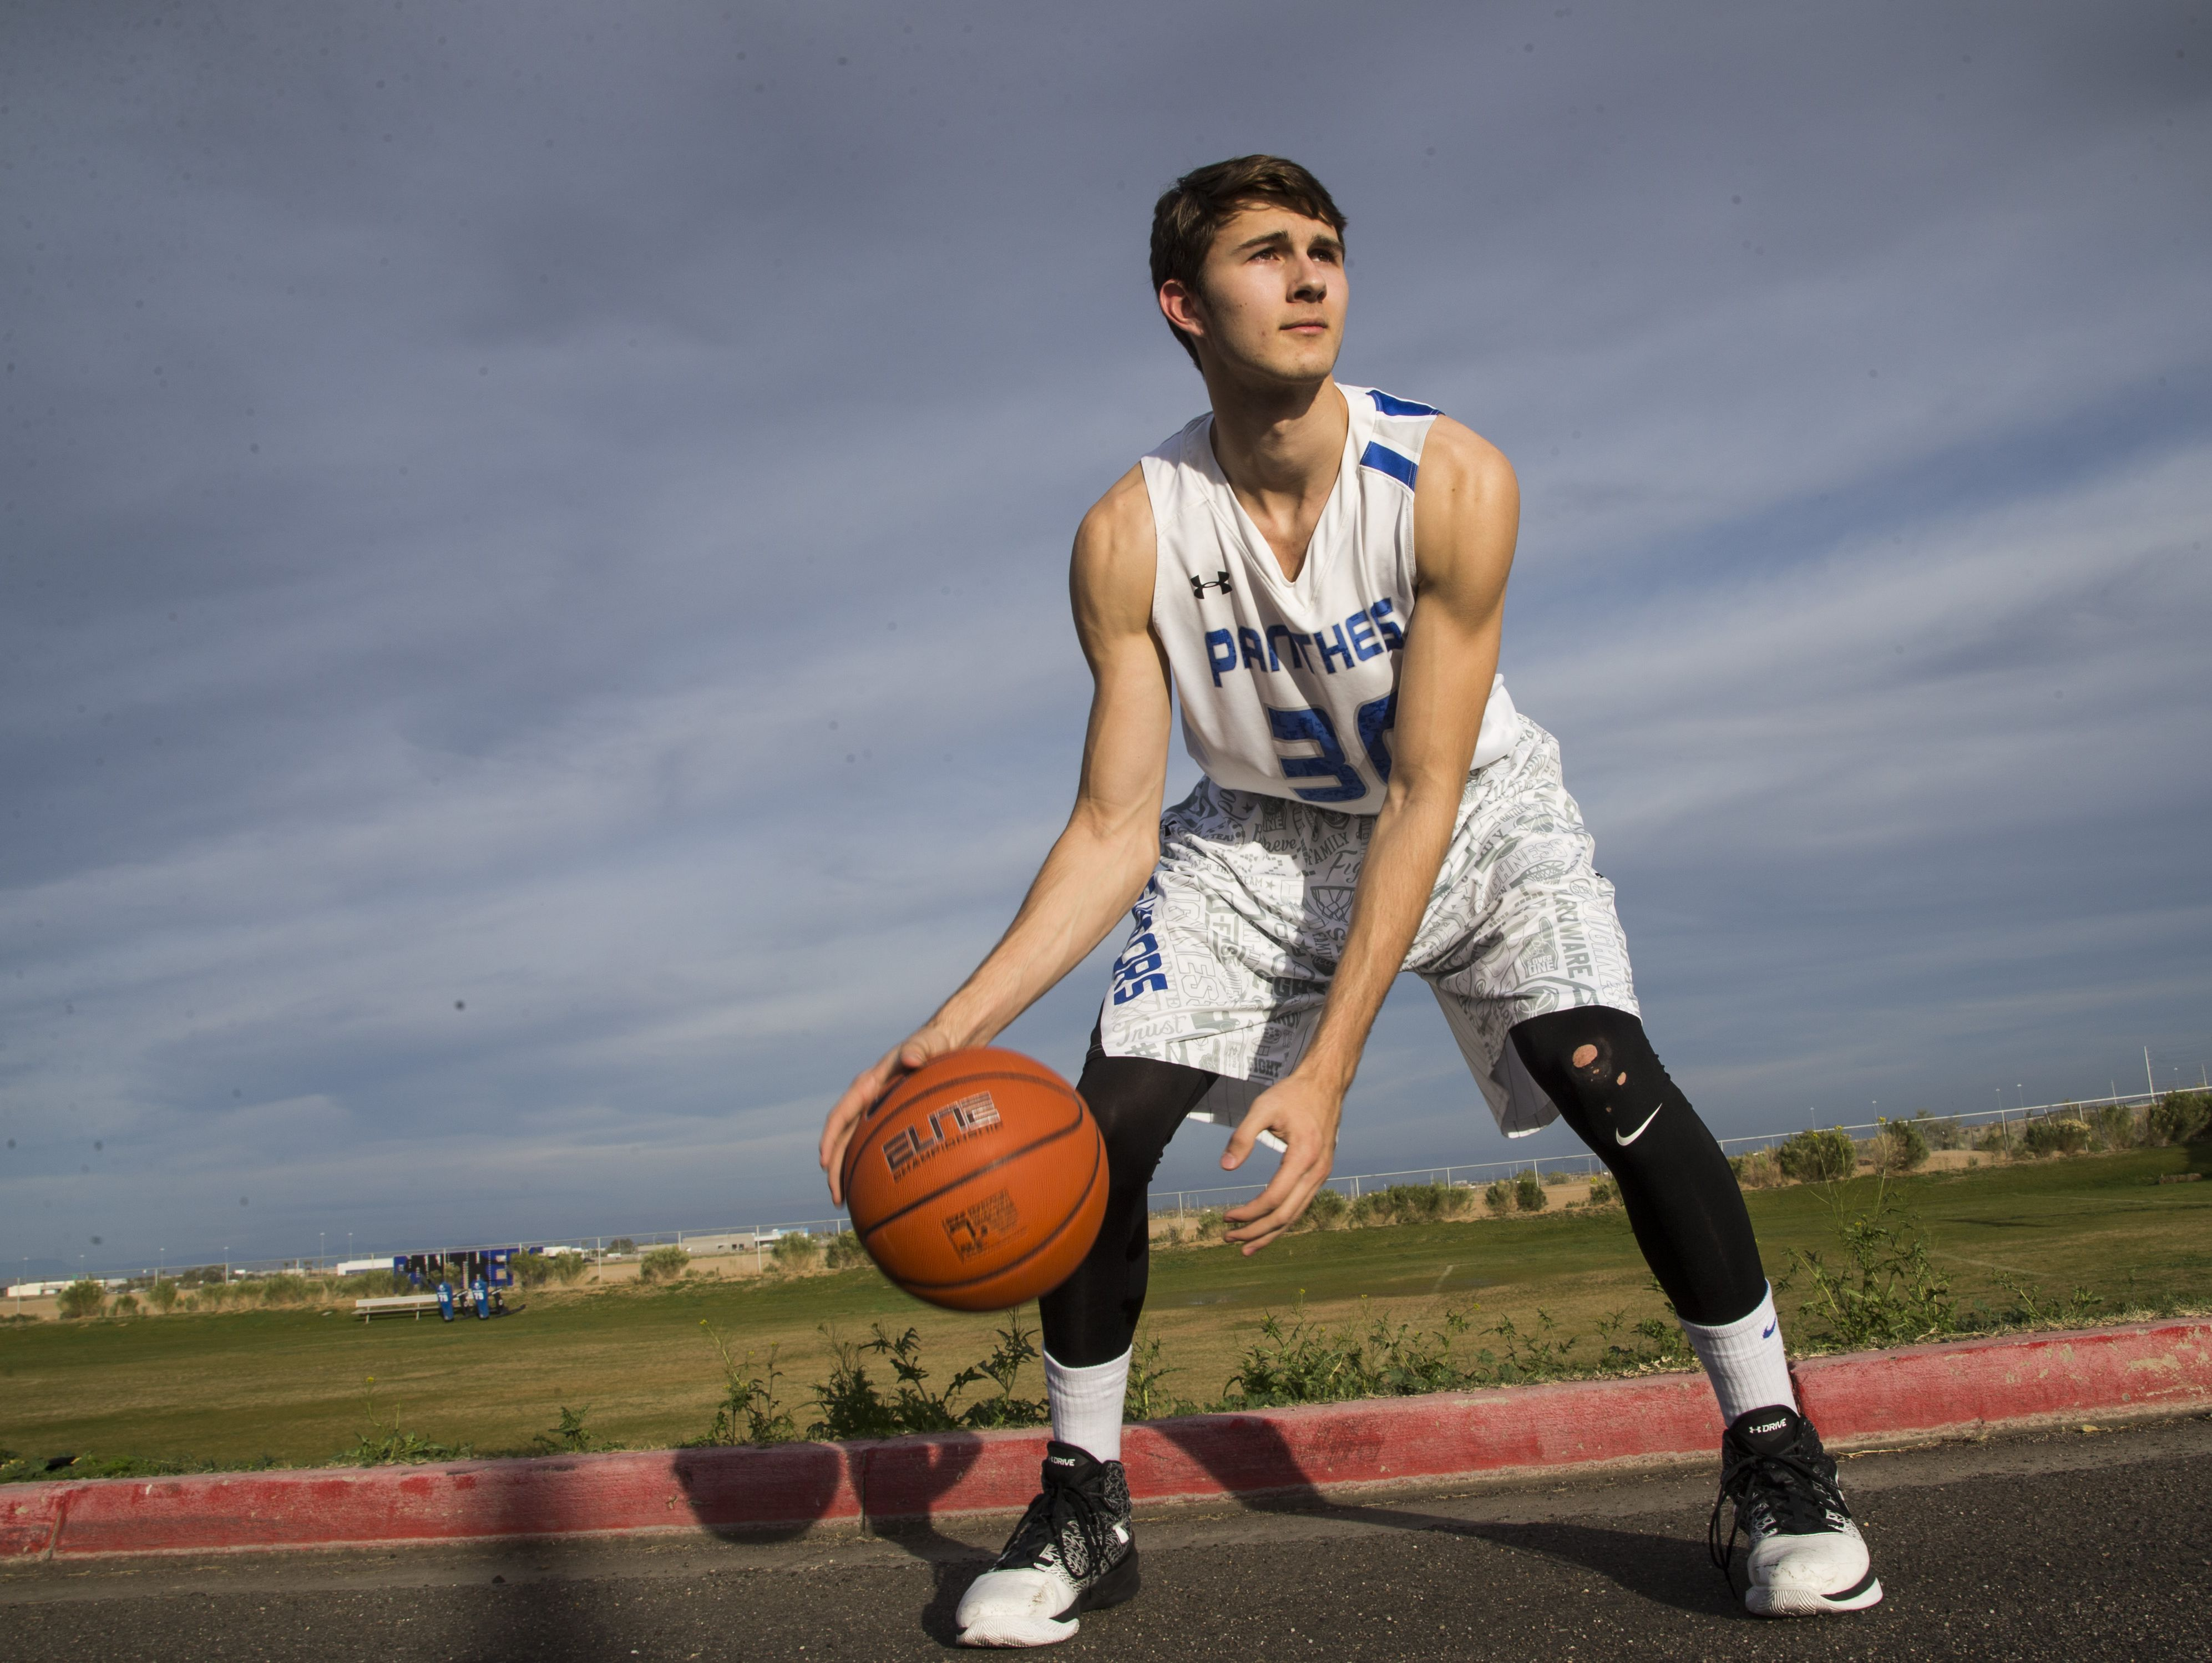 Paradise Honors junior Jared Perry grew from 5'10 to 6'7 over the past three years at Paradise Honors High School on February 6, 2017 in Surprise, Ariz.